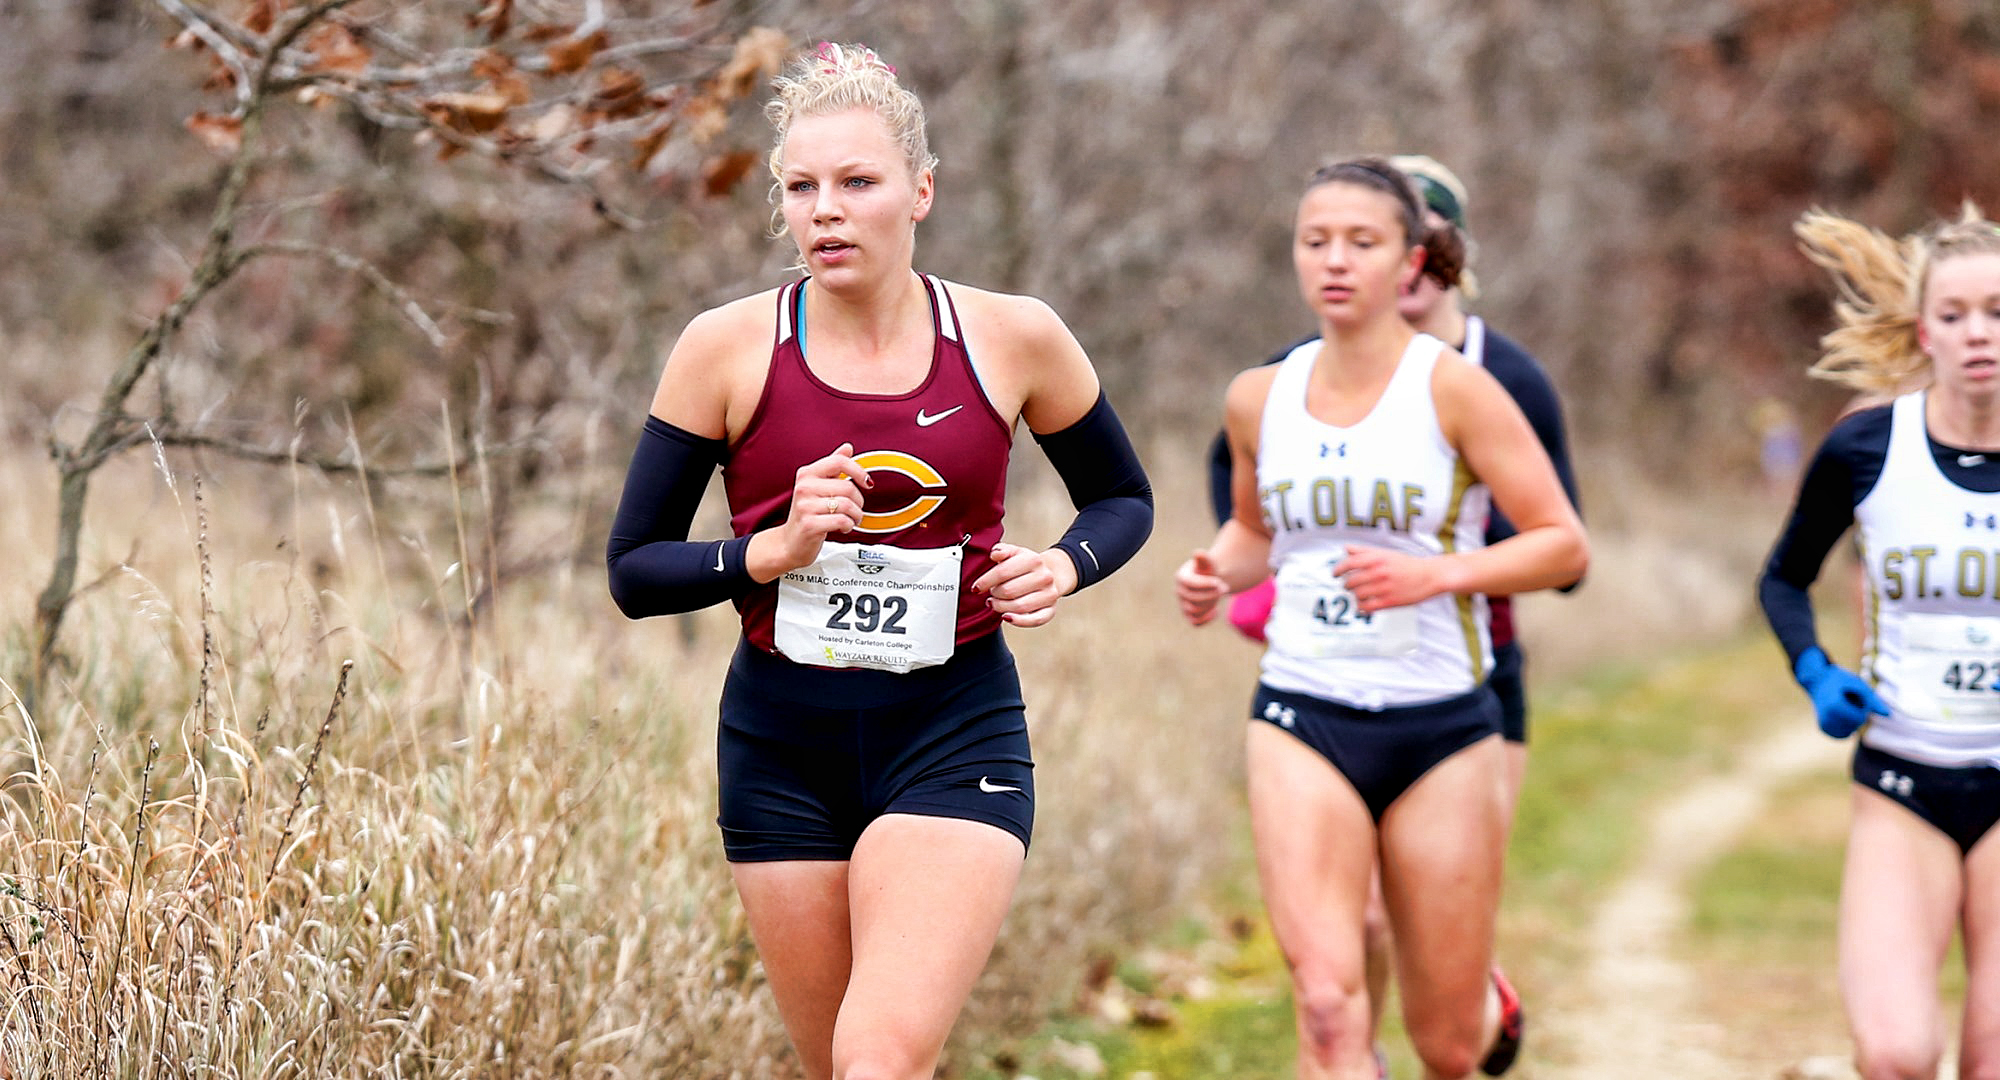 Senior Kara Andersen posted her second straight Top 30 finish at the NCAA Central Region Meet and earned All-Regions for the second consecutive year. (Photo by Nathan Lodermeier)